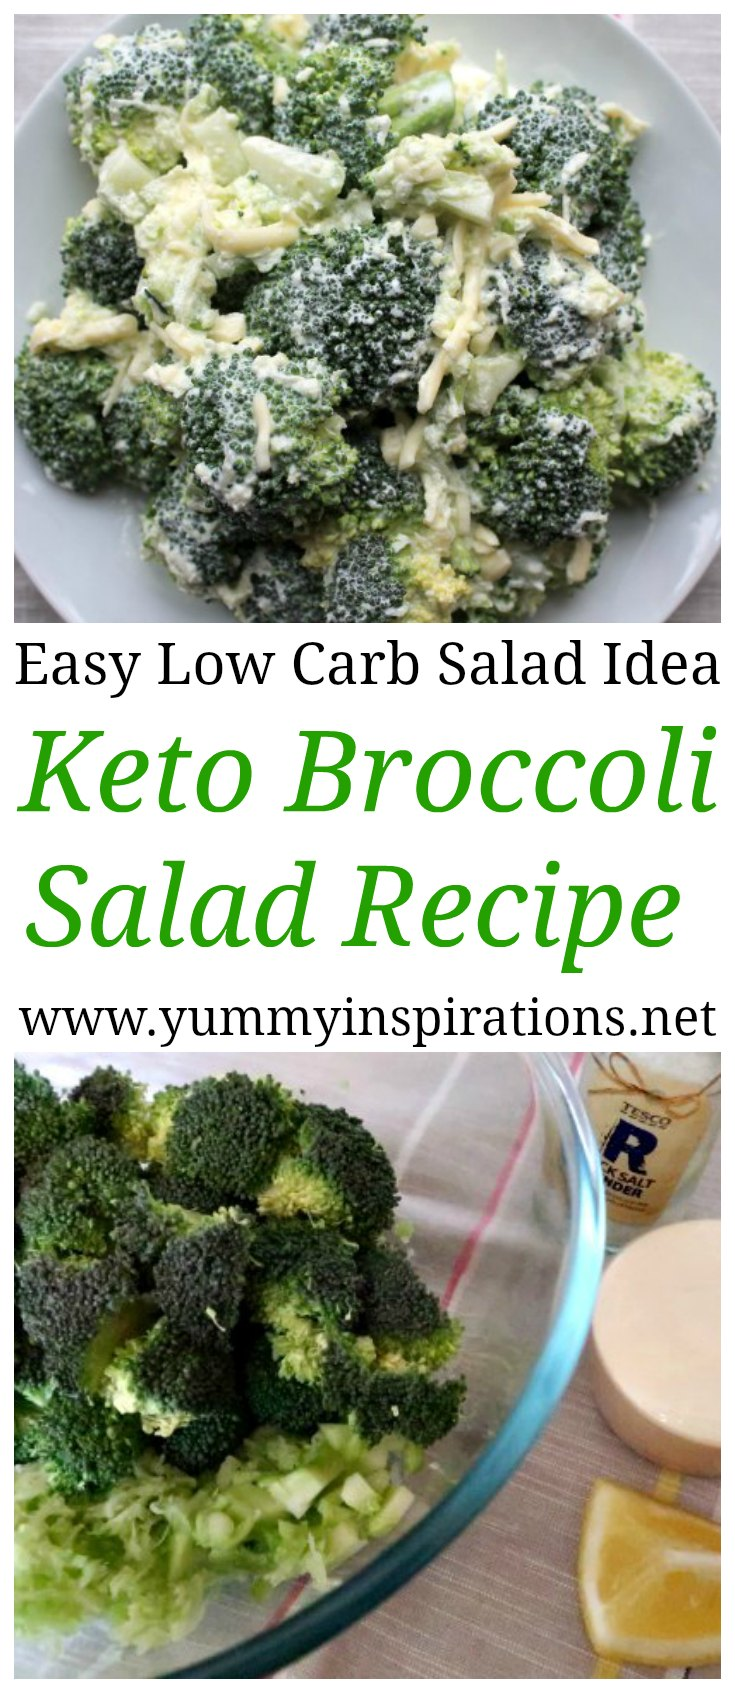 Healthy Keto Broccoli Salad Recipe - An easy low carb vegetarian simple salad idea with broccoli, sour cream and cheese - plus the full step by step video tutorial.